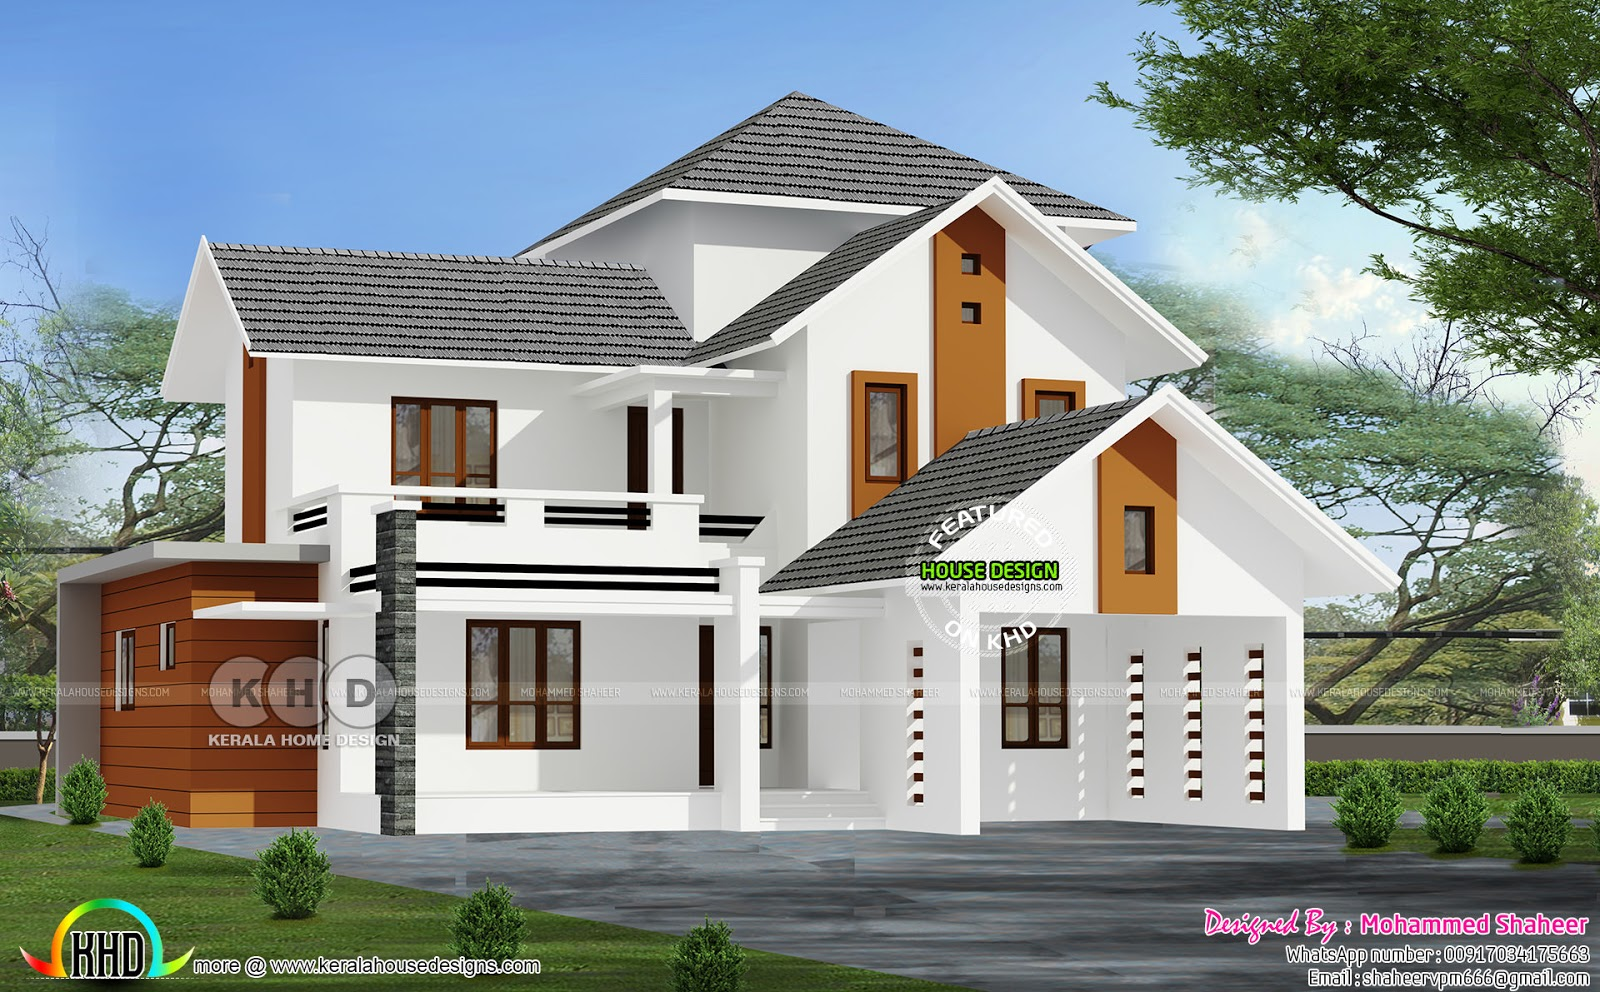 Sloping roof 3000 sq ft house with 4 bedrooms kerala for 3000 square foot home